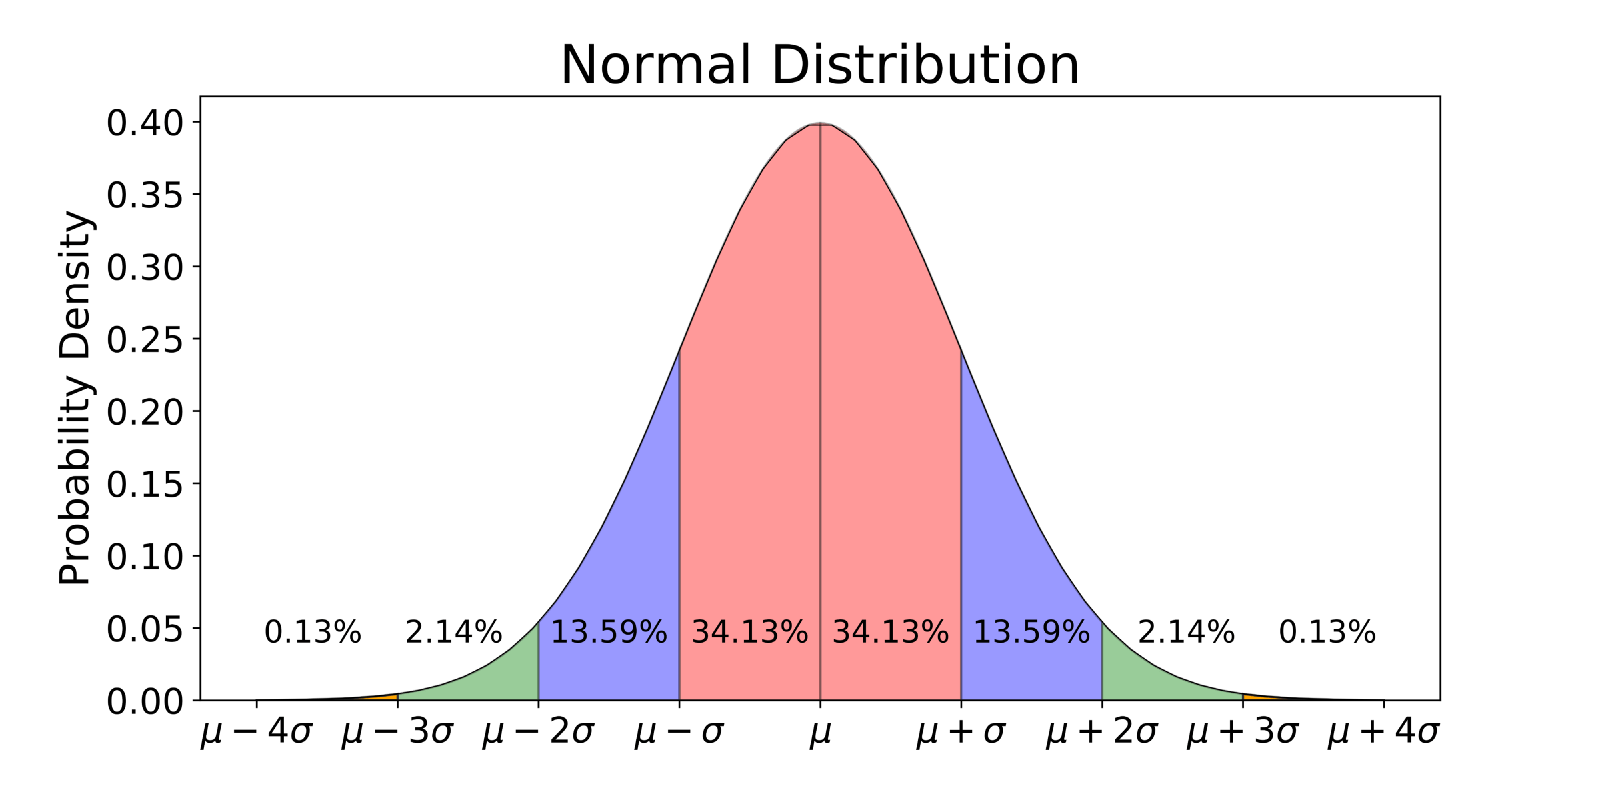 Finding Expected Value And Variance Of Normal Distribution